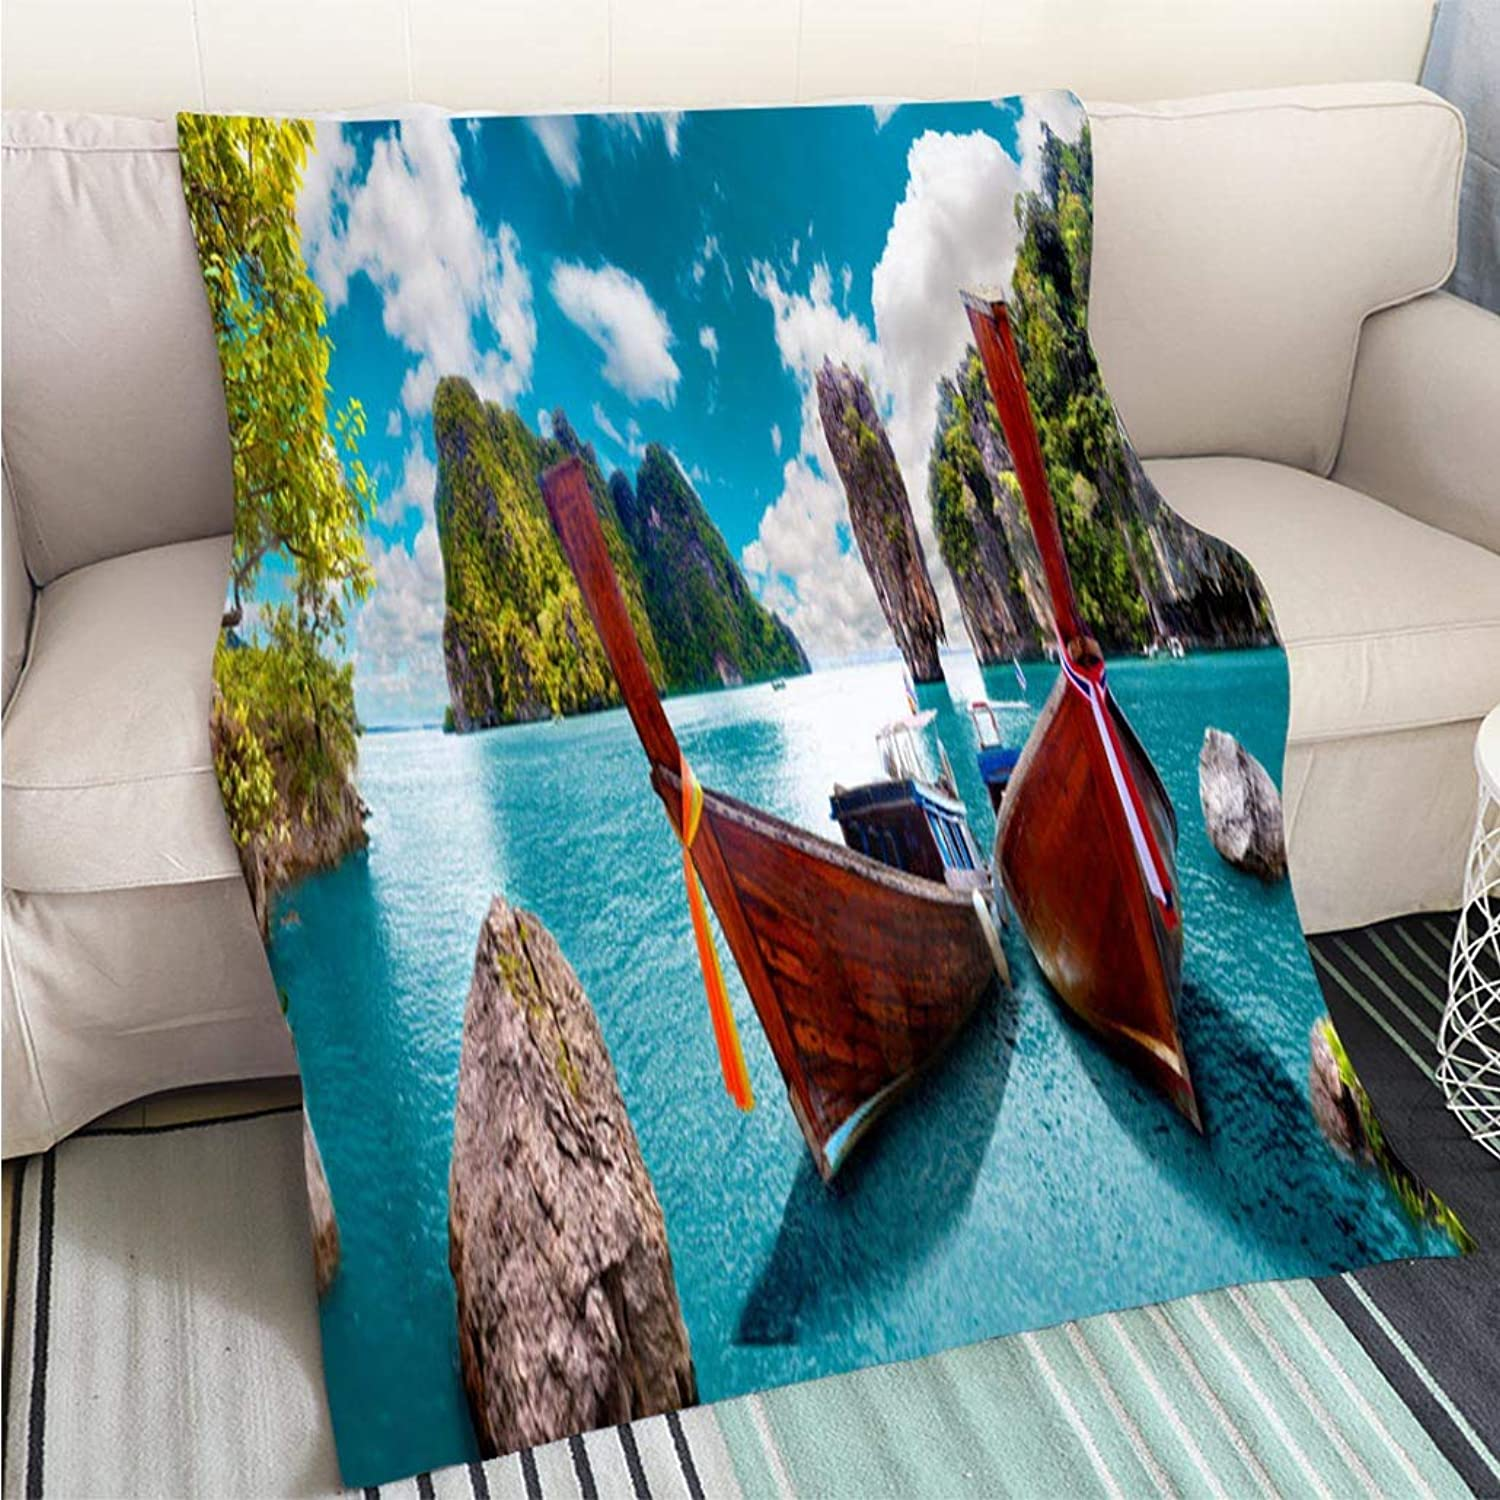 BEICICI Luxury Super Soft Blanket Scenic landscapePhuket Seascape Sofa Bed or Bed 3D Printing Cool Quilt